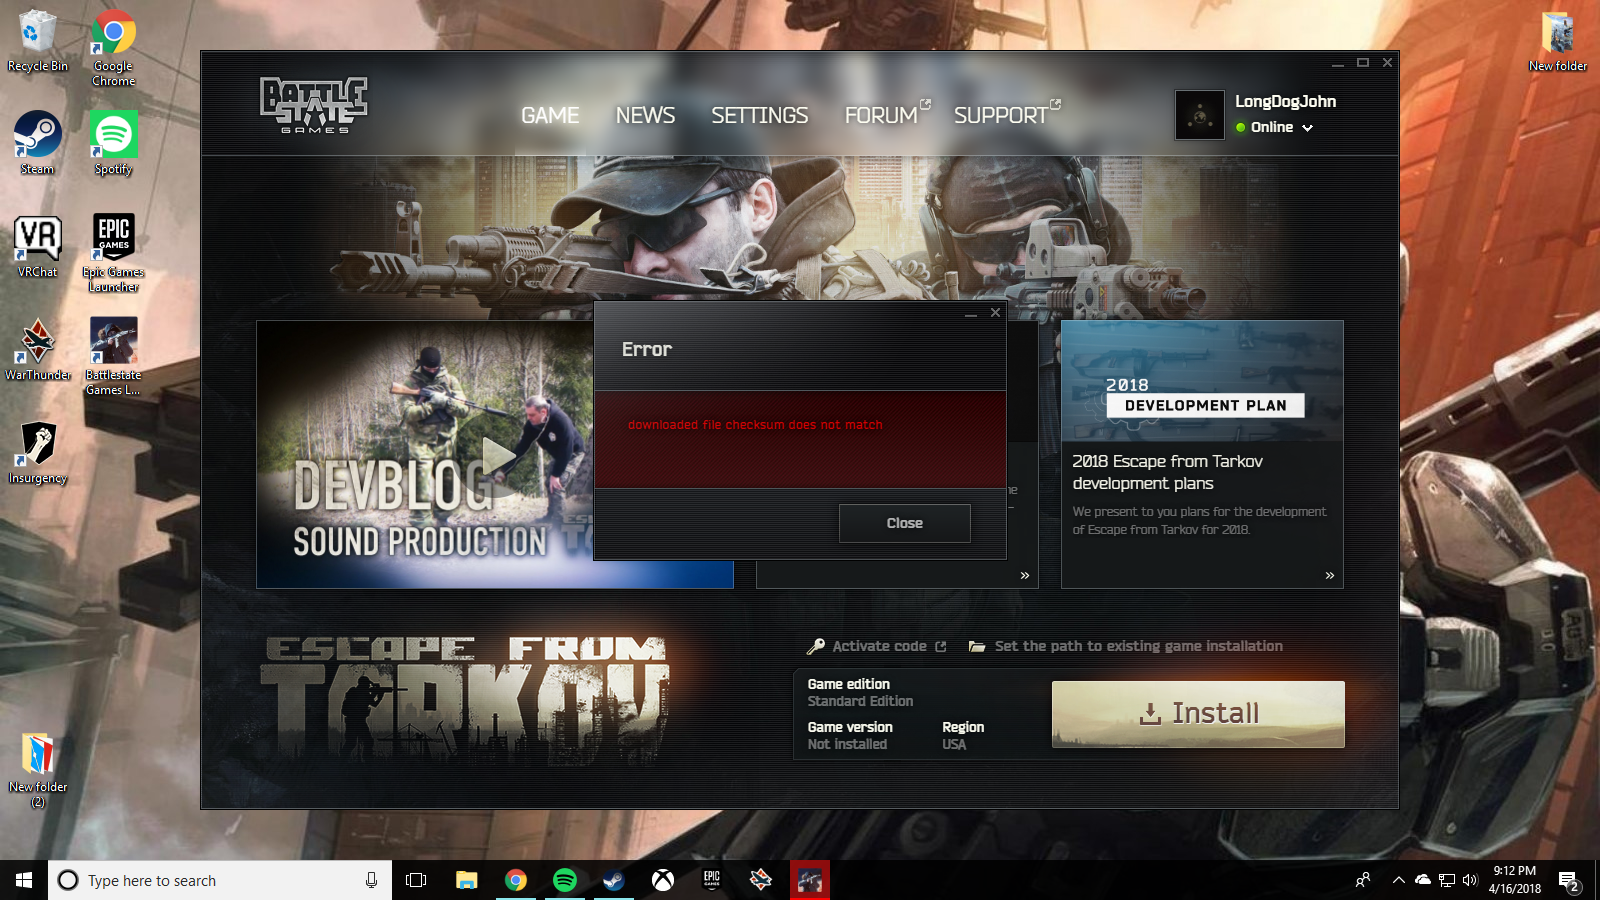 Guys, I need help on the game heroes and generals strongly lags